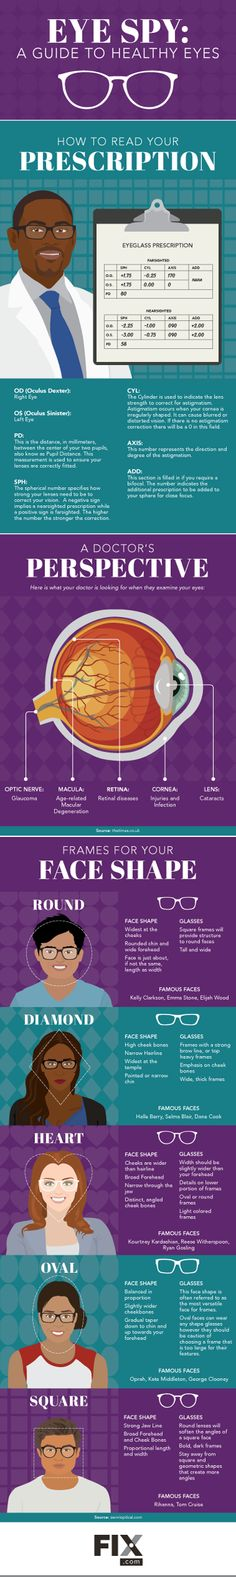 There are many reasons to get your eyes checked, even if you don't feel that your vision is deteriorating. Find out what to expect at an eye exam with our guide!